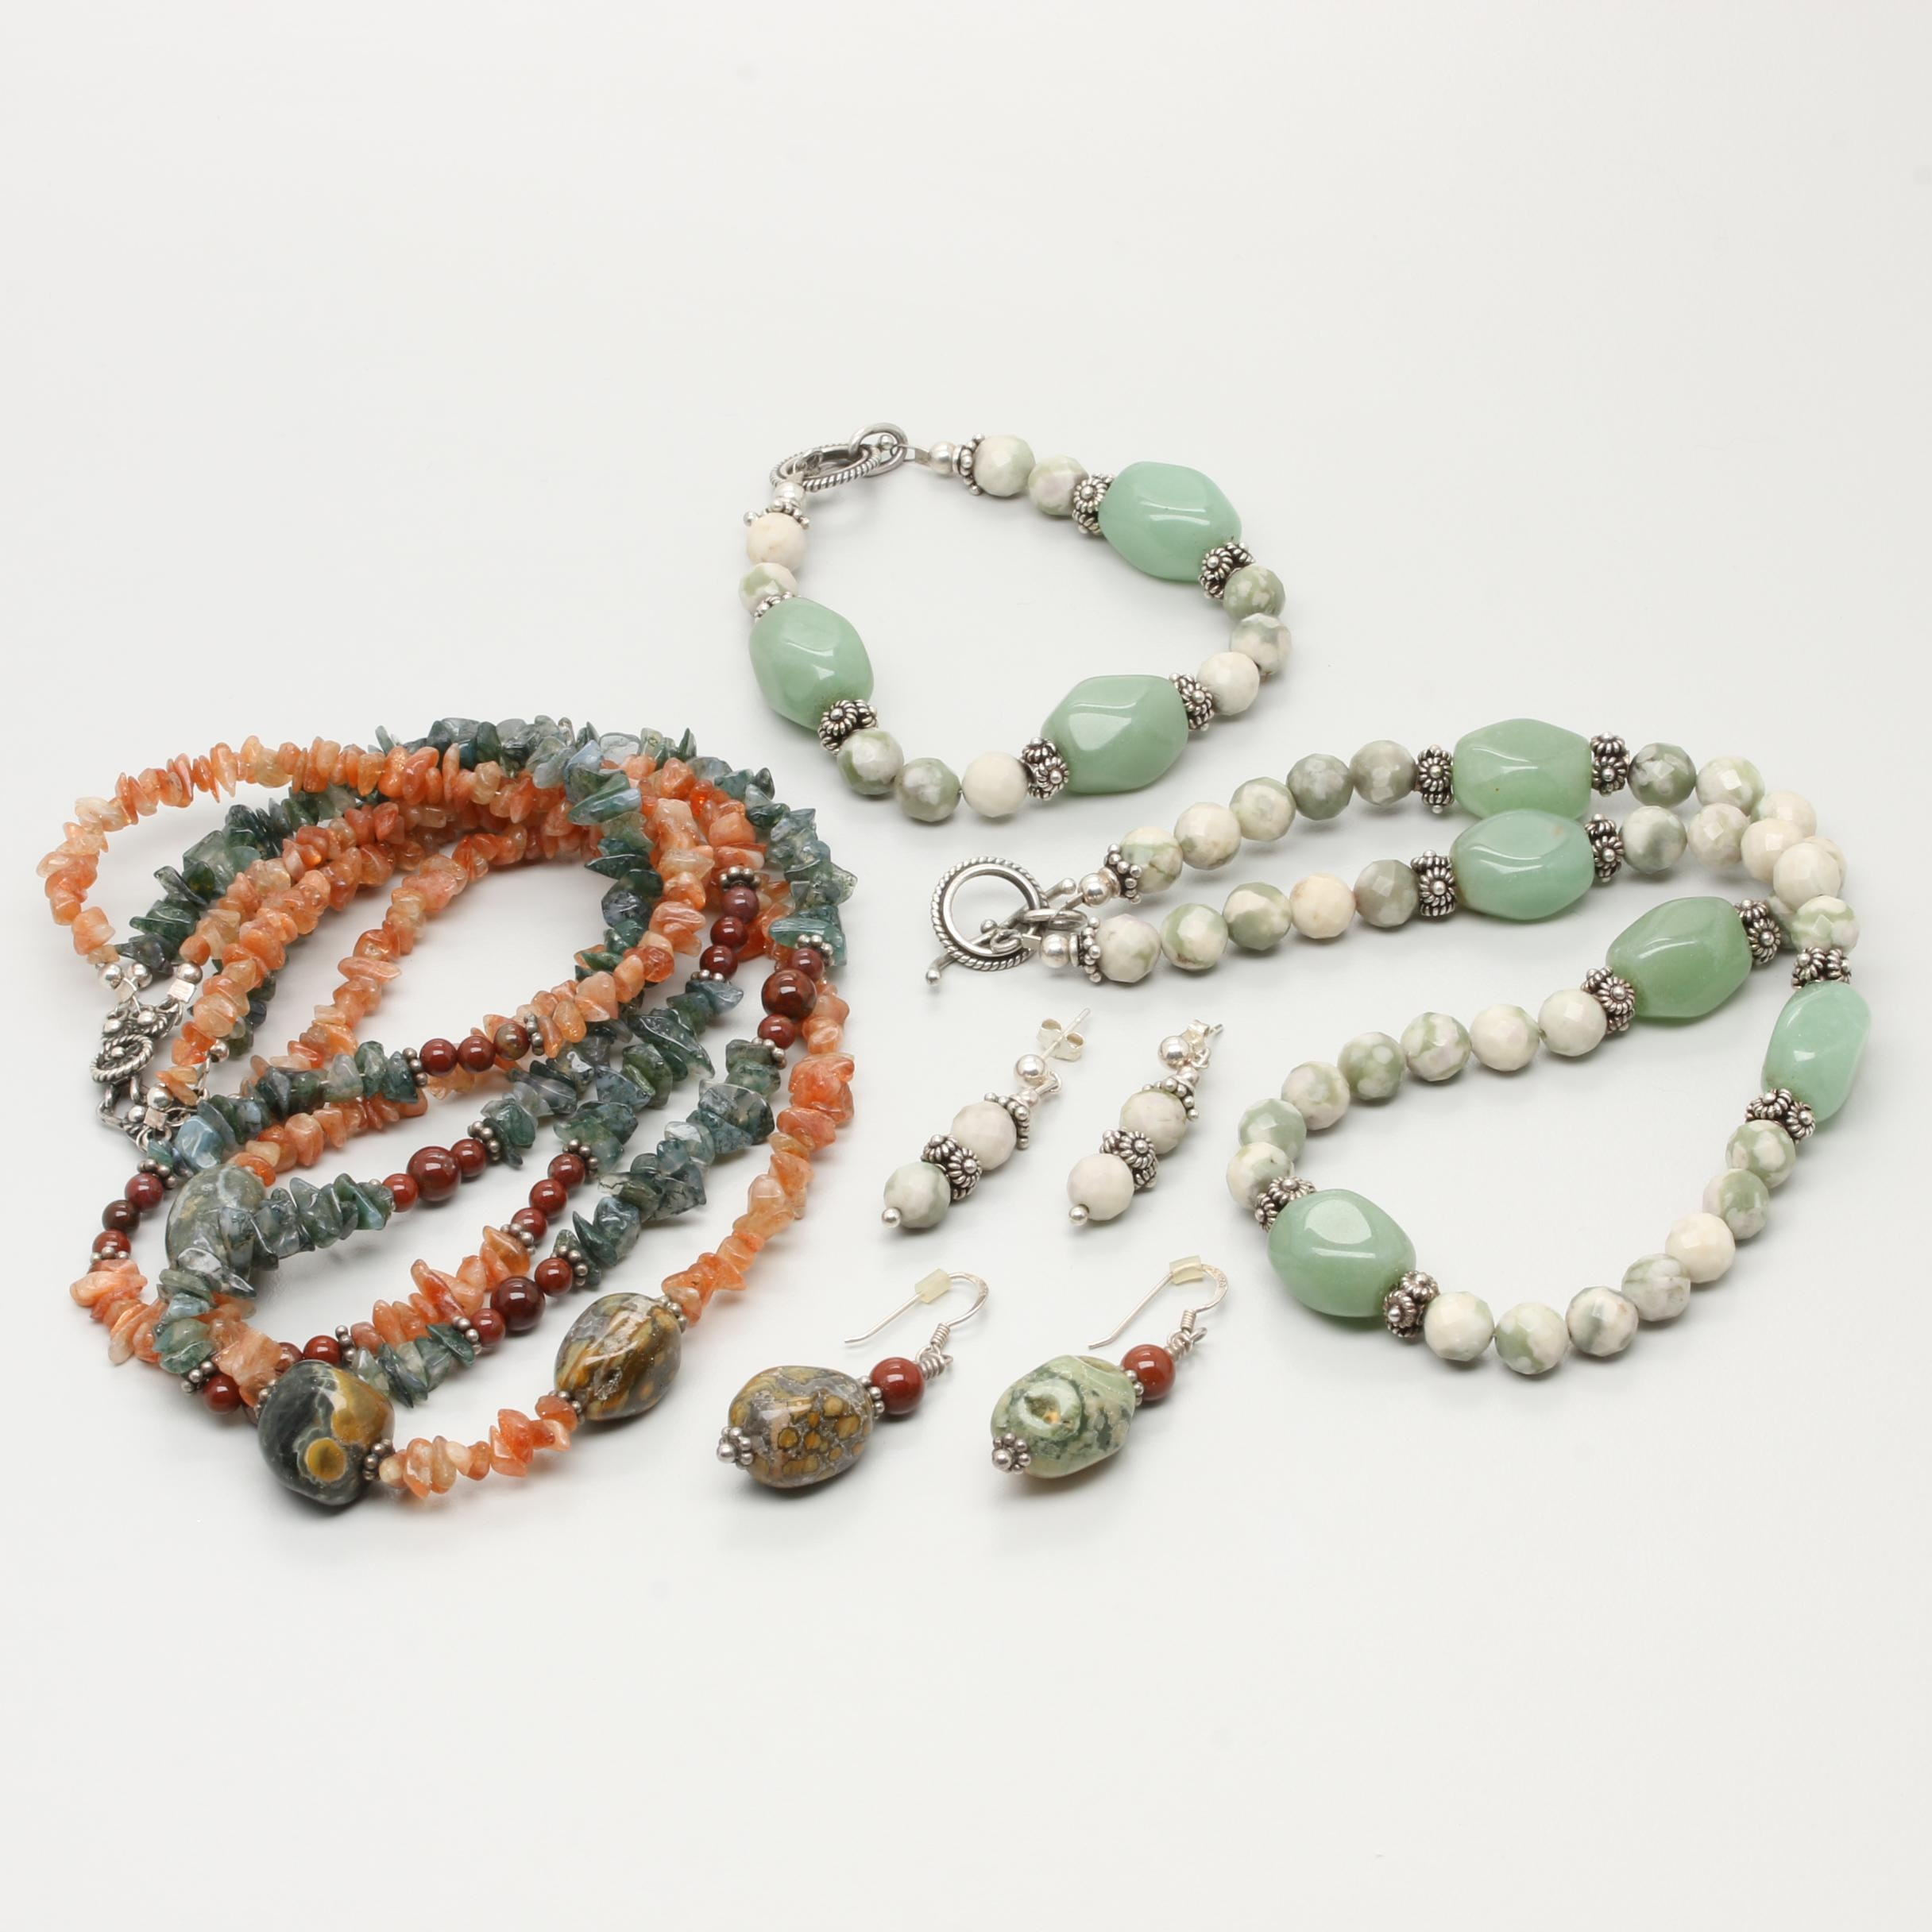 Assorted Sterling Silver Beaded Jewelry Featuring Aventurine, Agate and Jasper